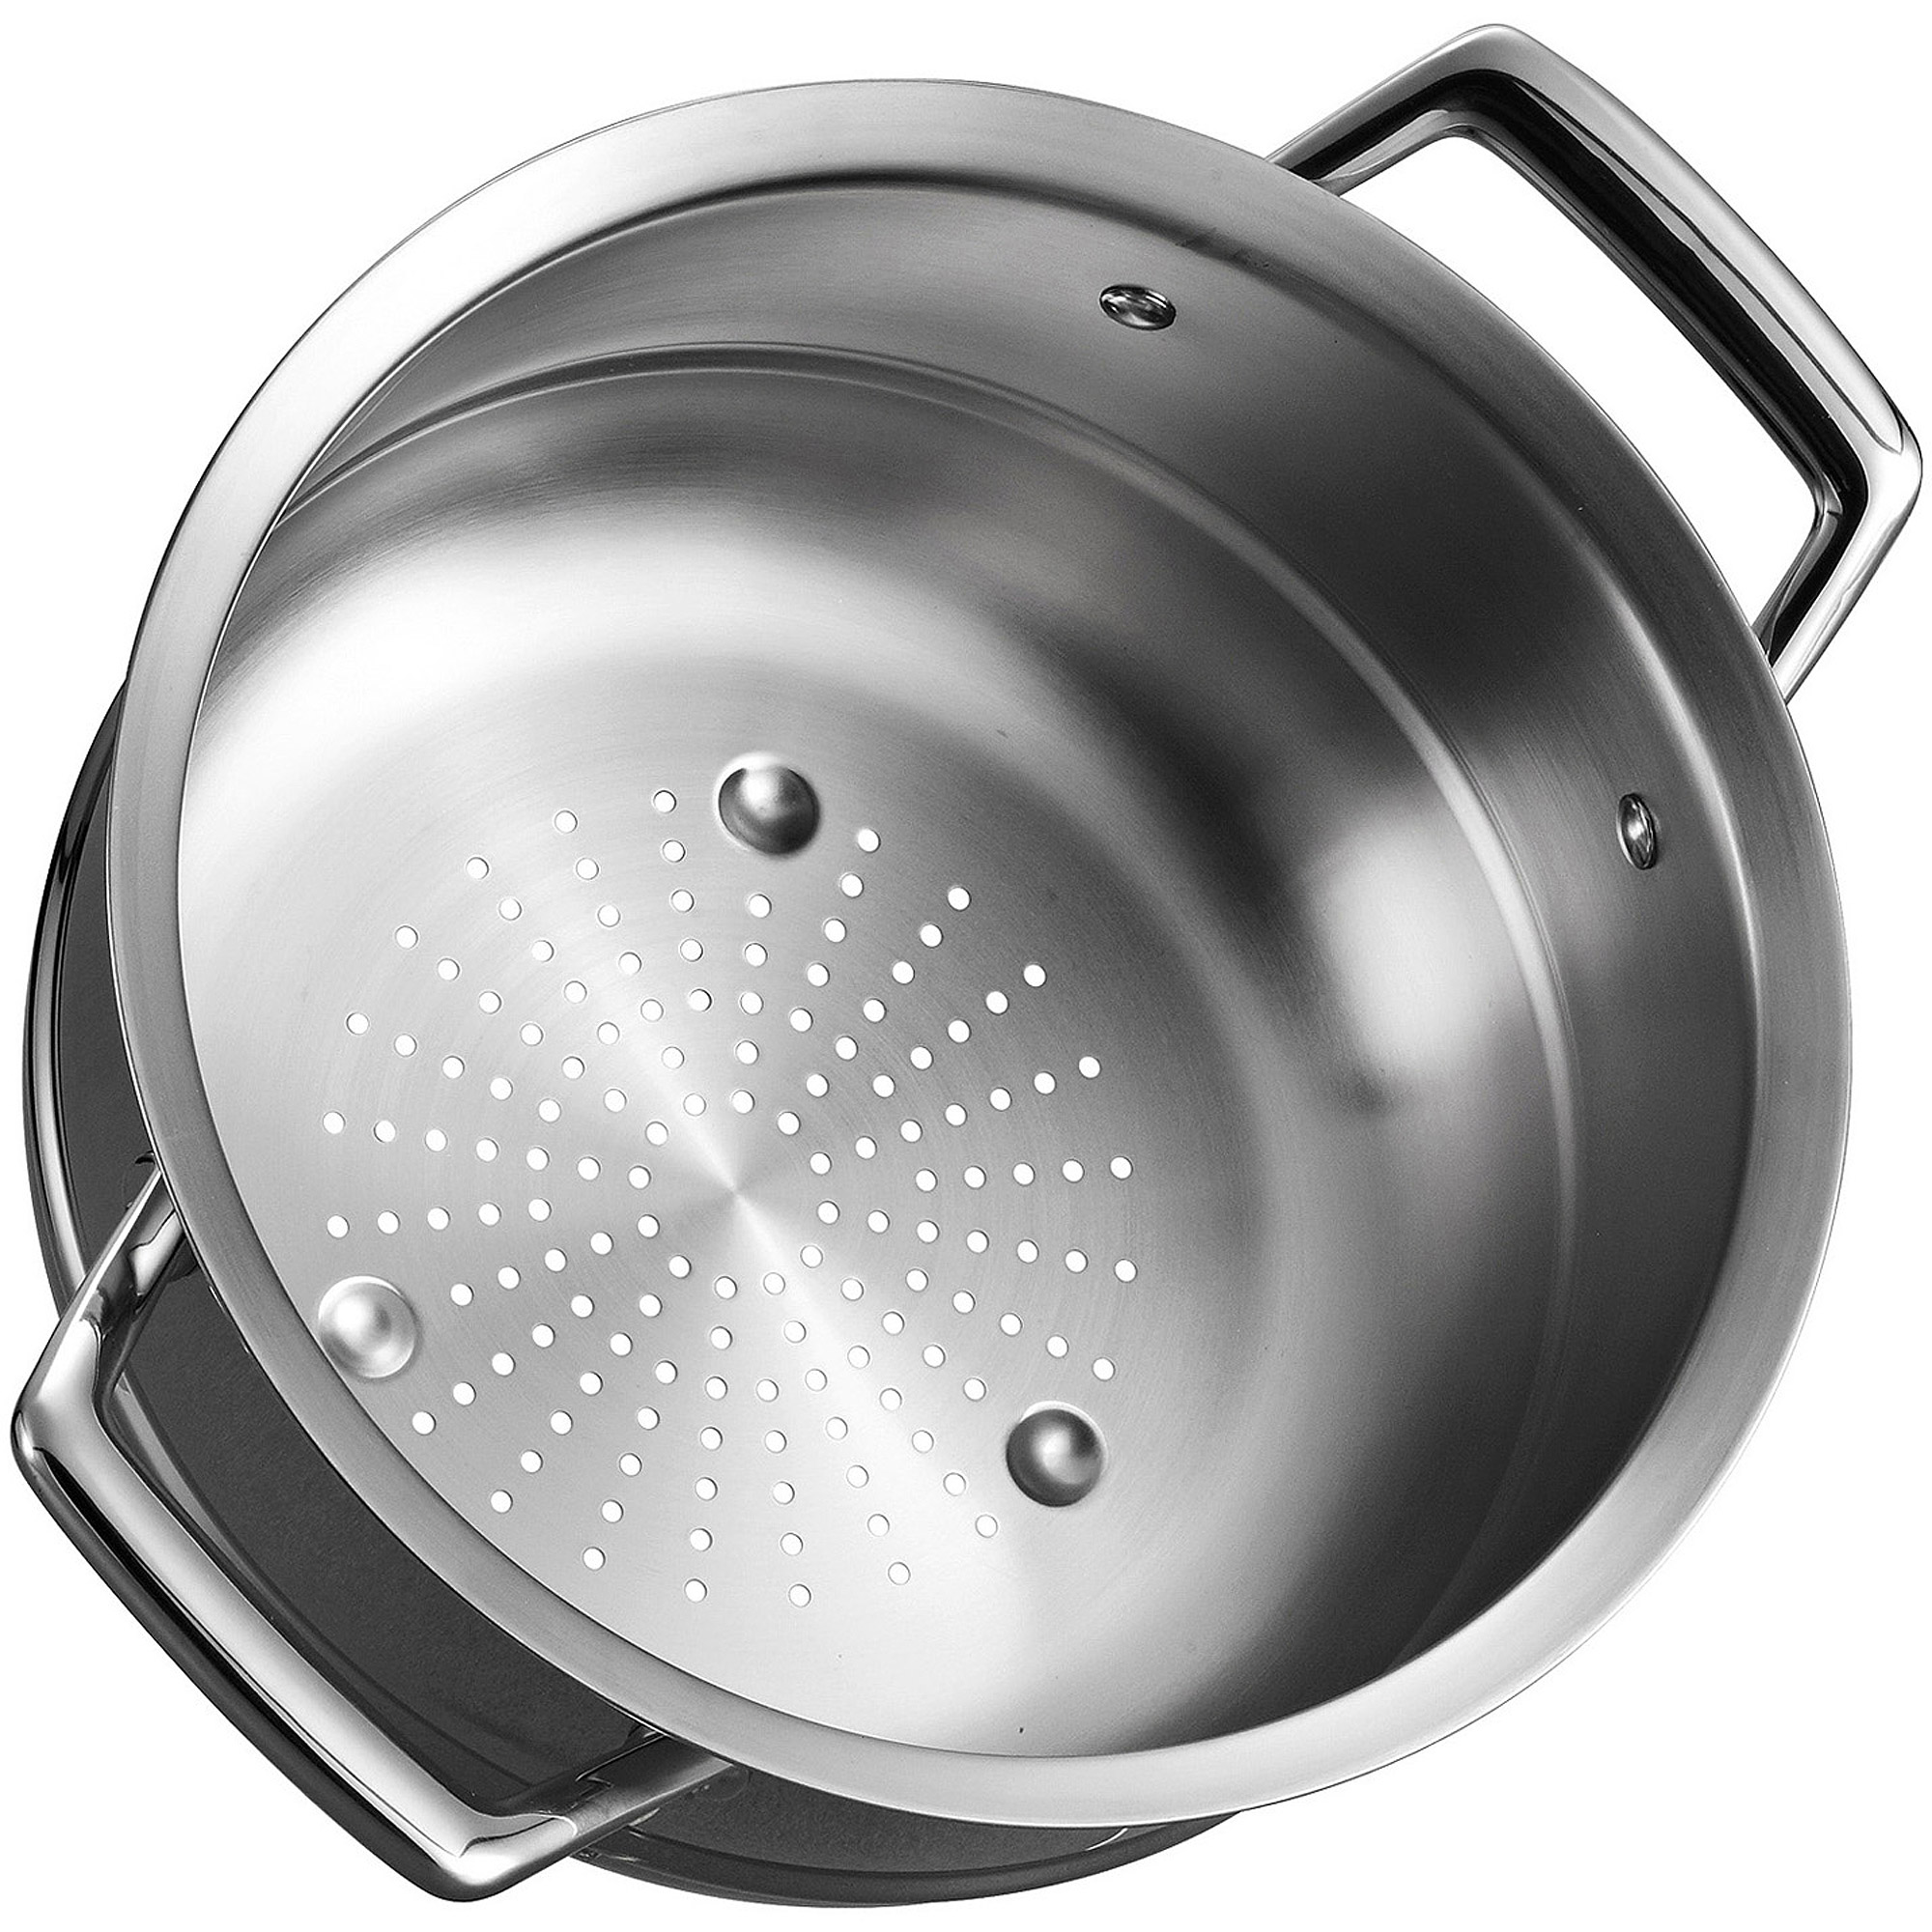 Tramontina Gourmet Prima Stainless Steel Steamer Insert Fits 5 Qt Dutch Oven 6 Sauce Pot And 8 Stock